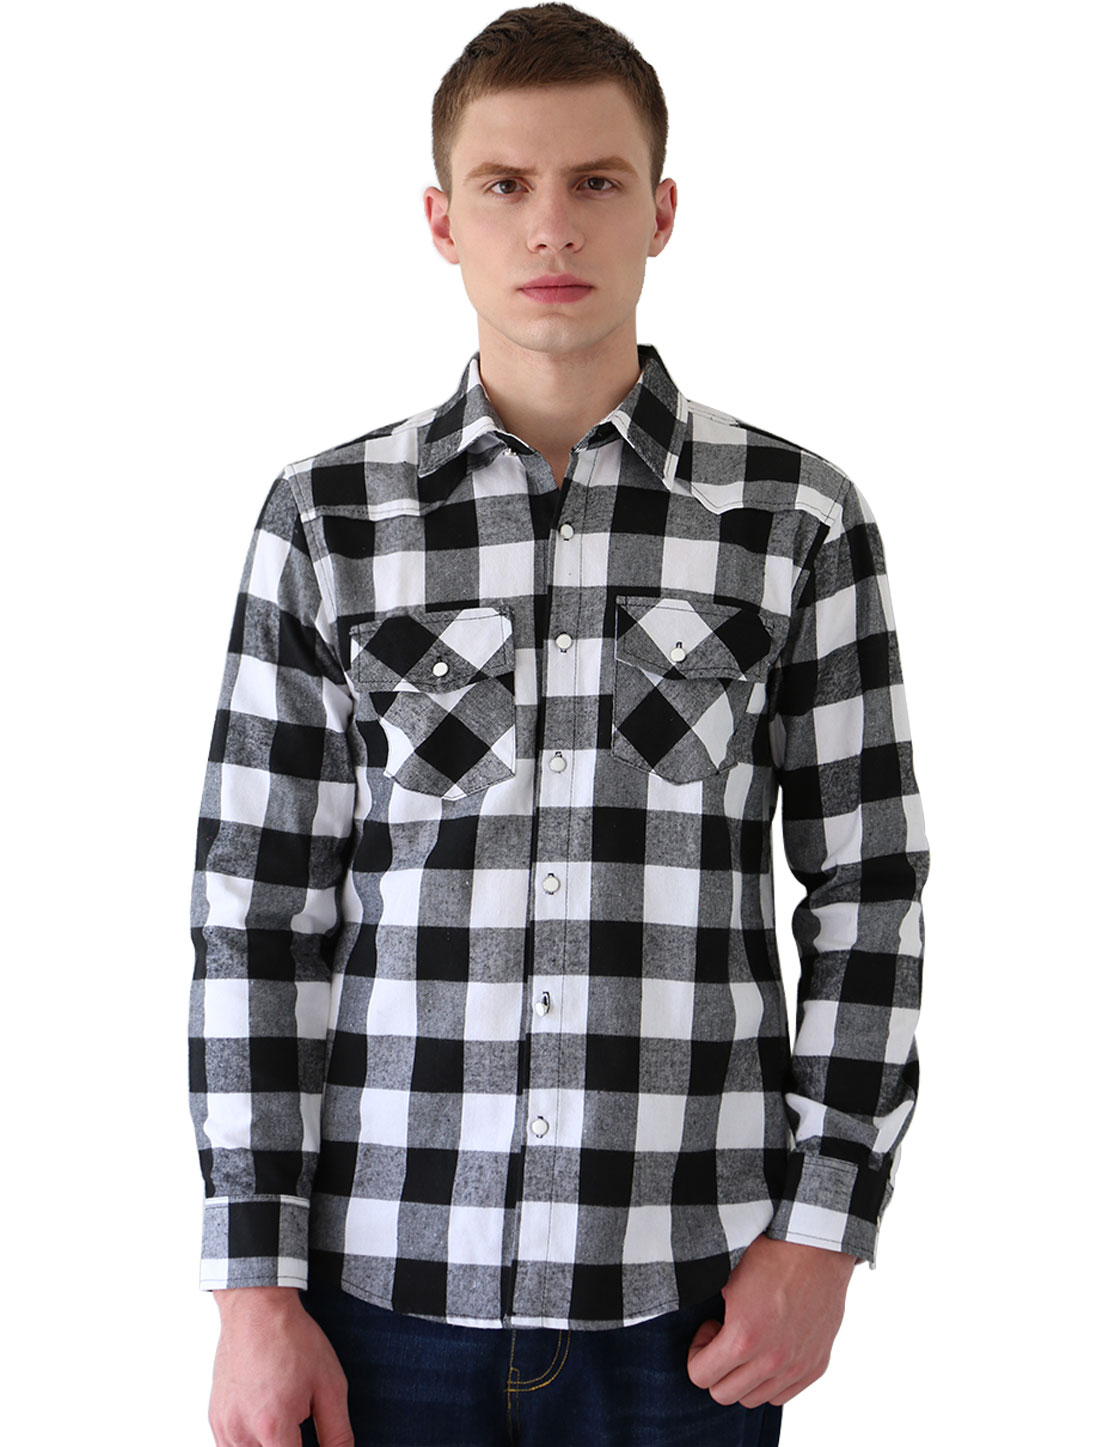 Men Long Sleeve Chest Pockets Button Down Checks Shirt Black White M